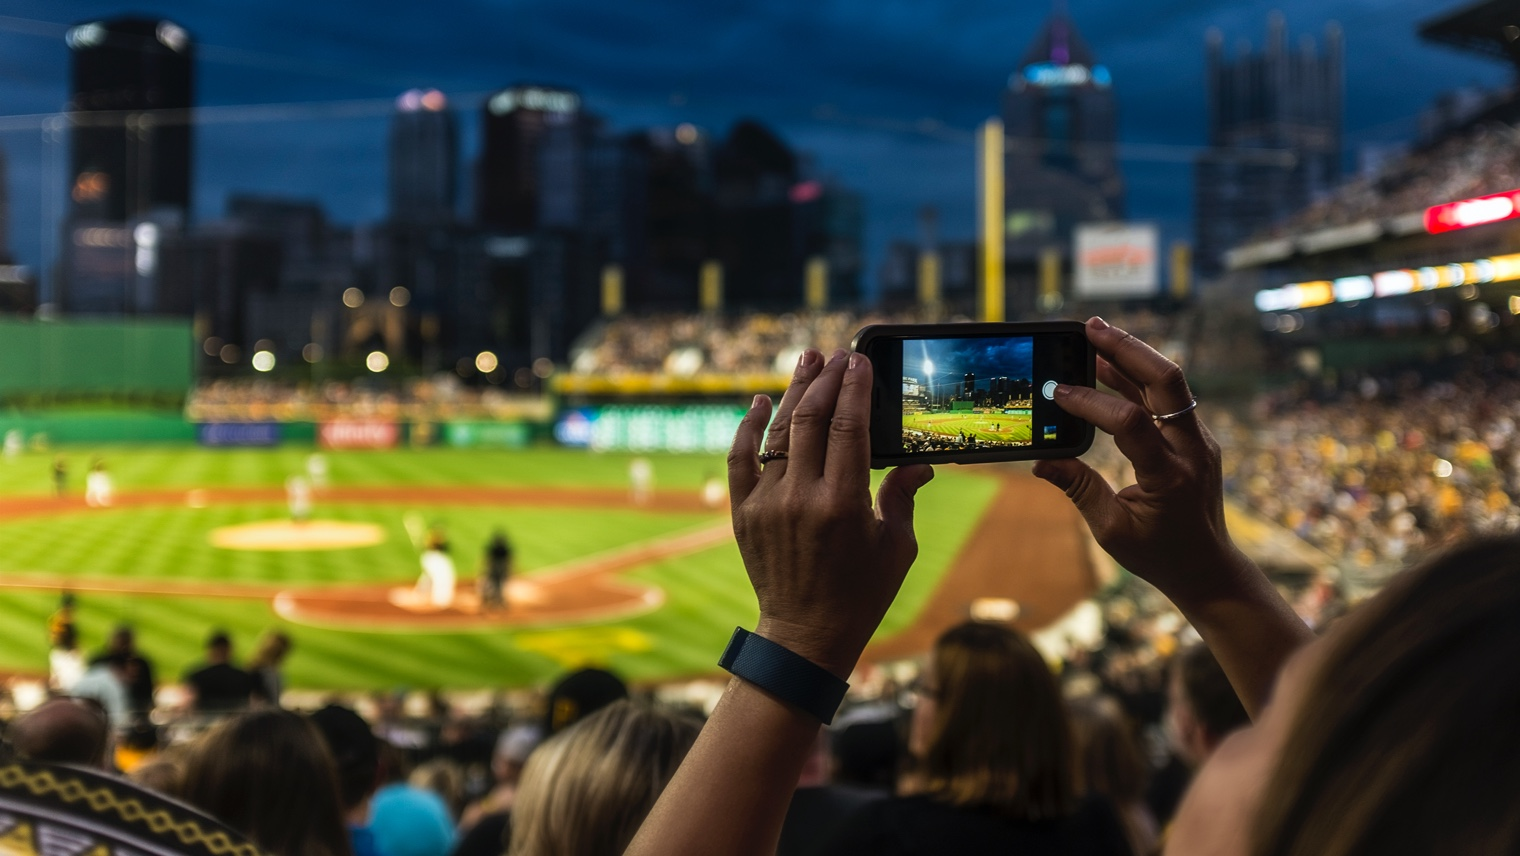 5G will enable immersive sports and live events